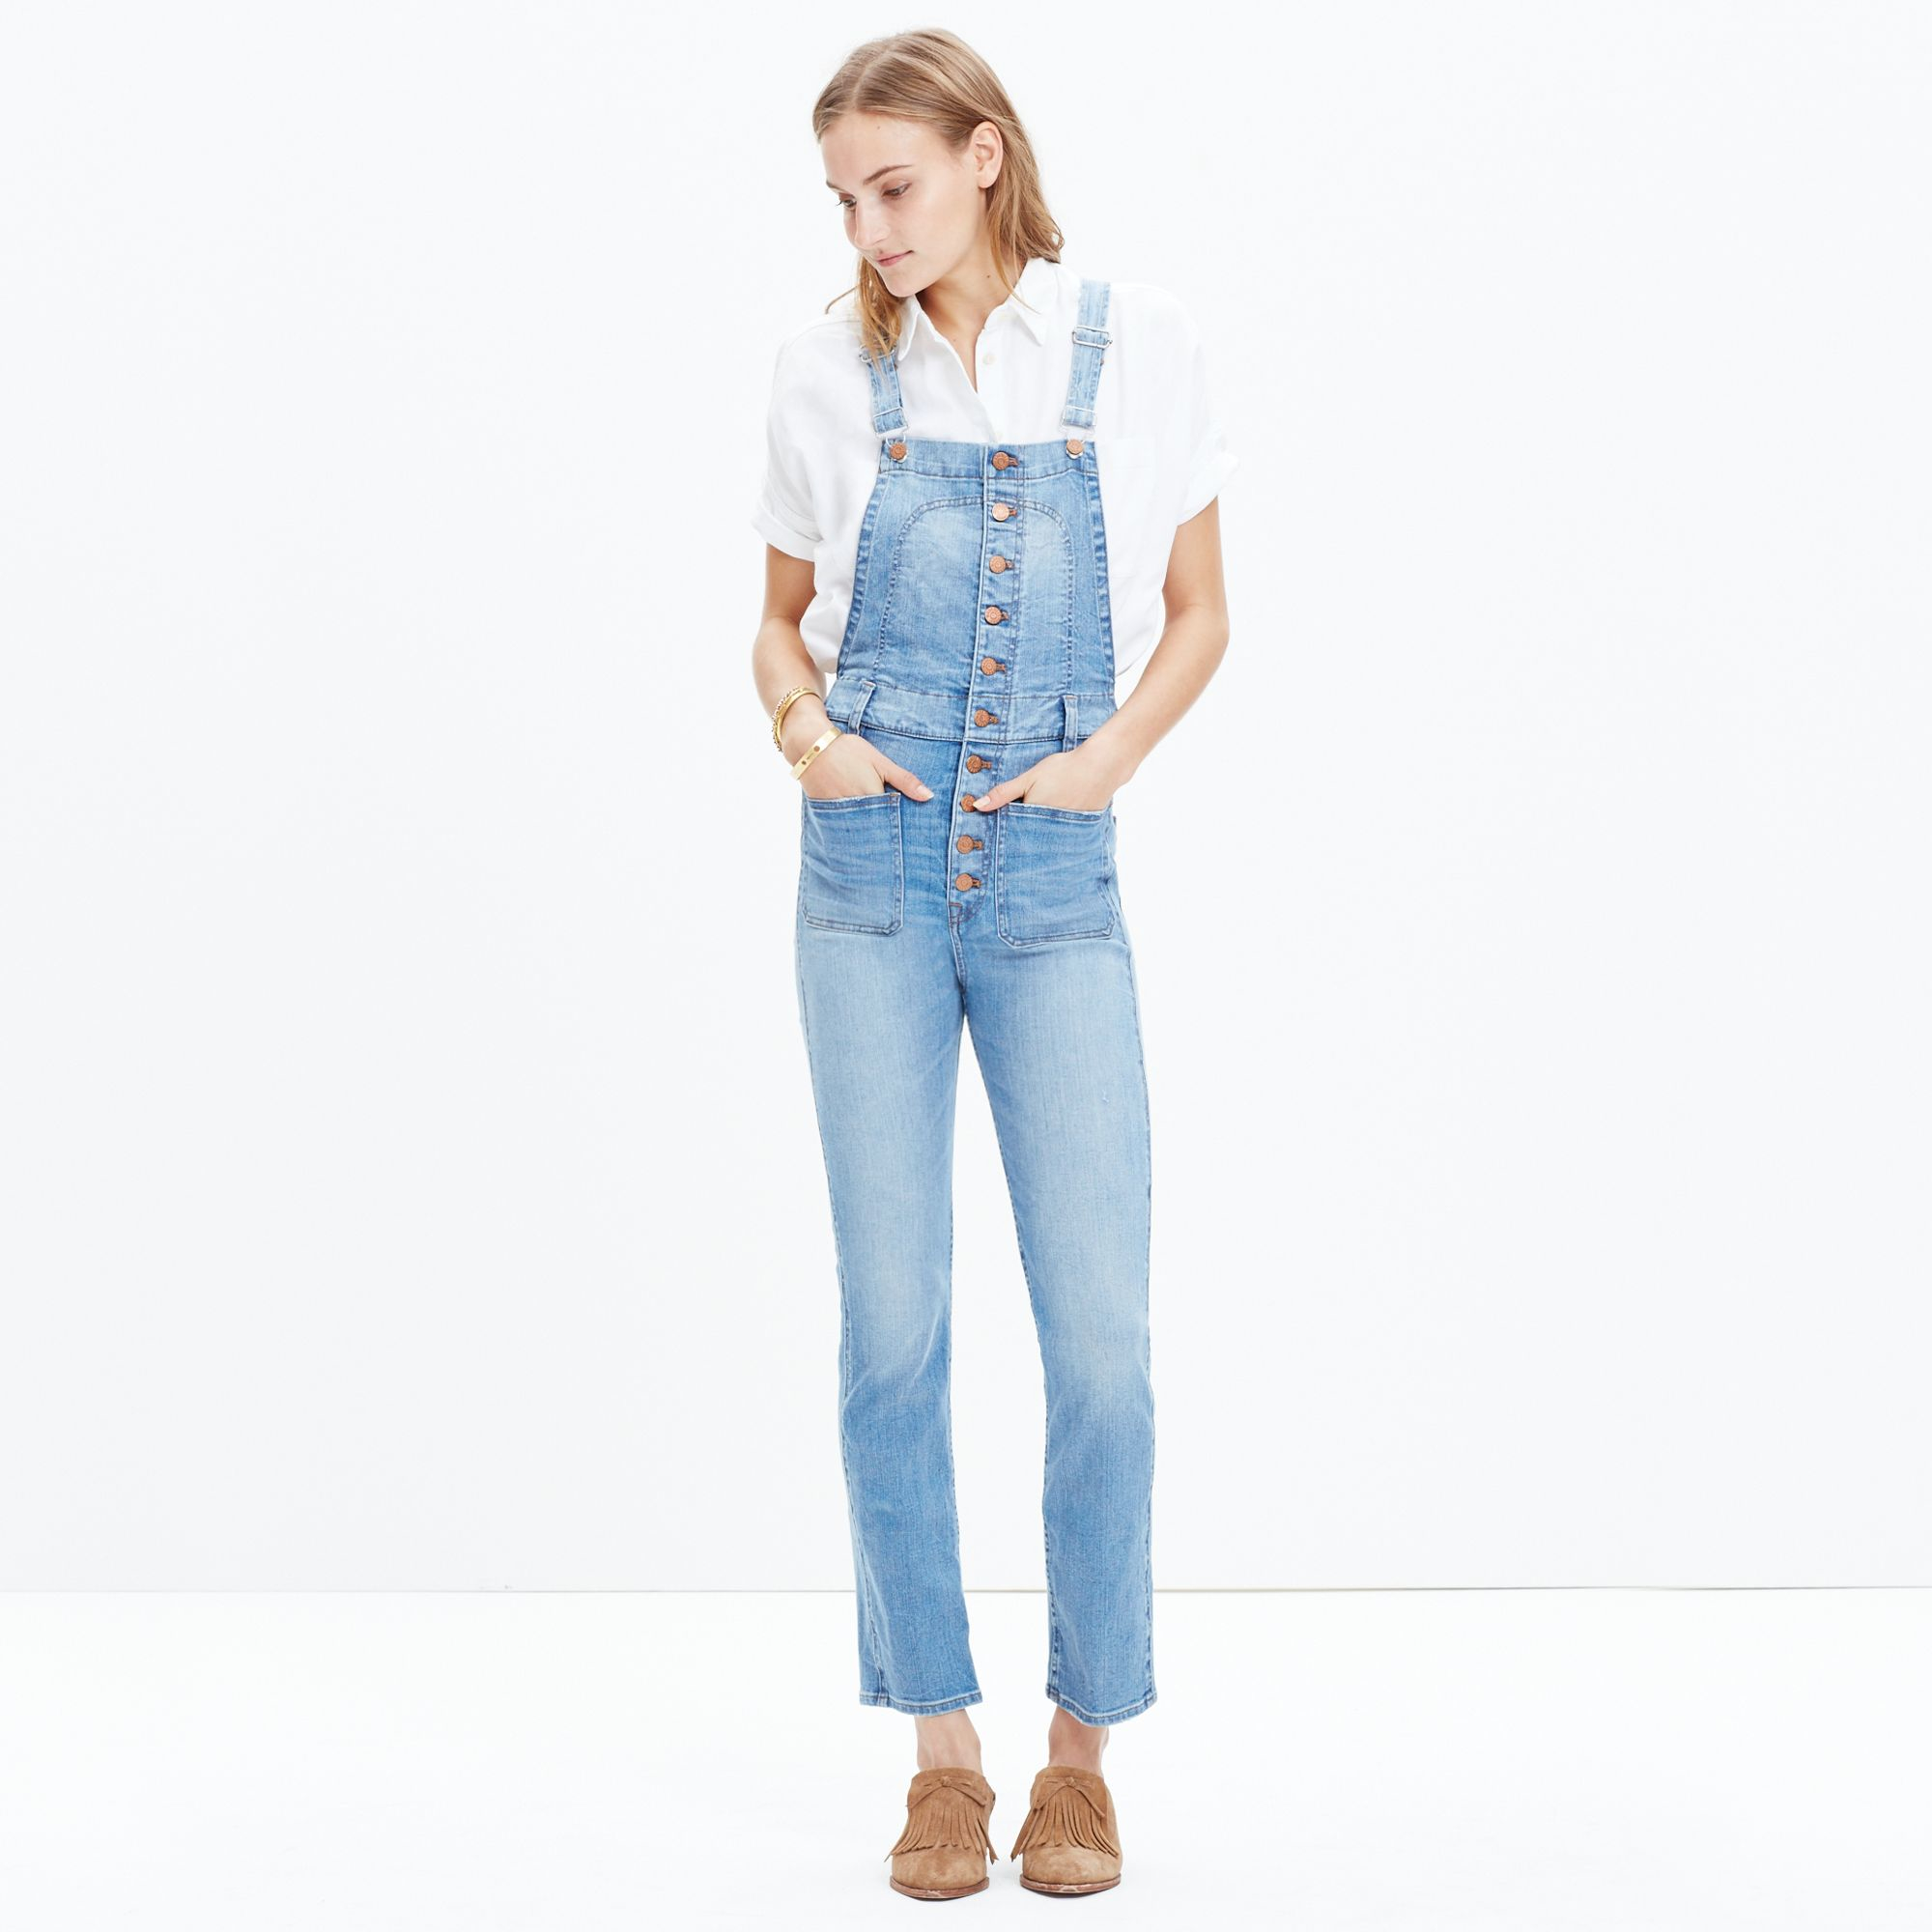 e3a54fc0c1ac Madewell Bayfront Crop Overalls in Blue - Lyst